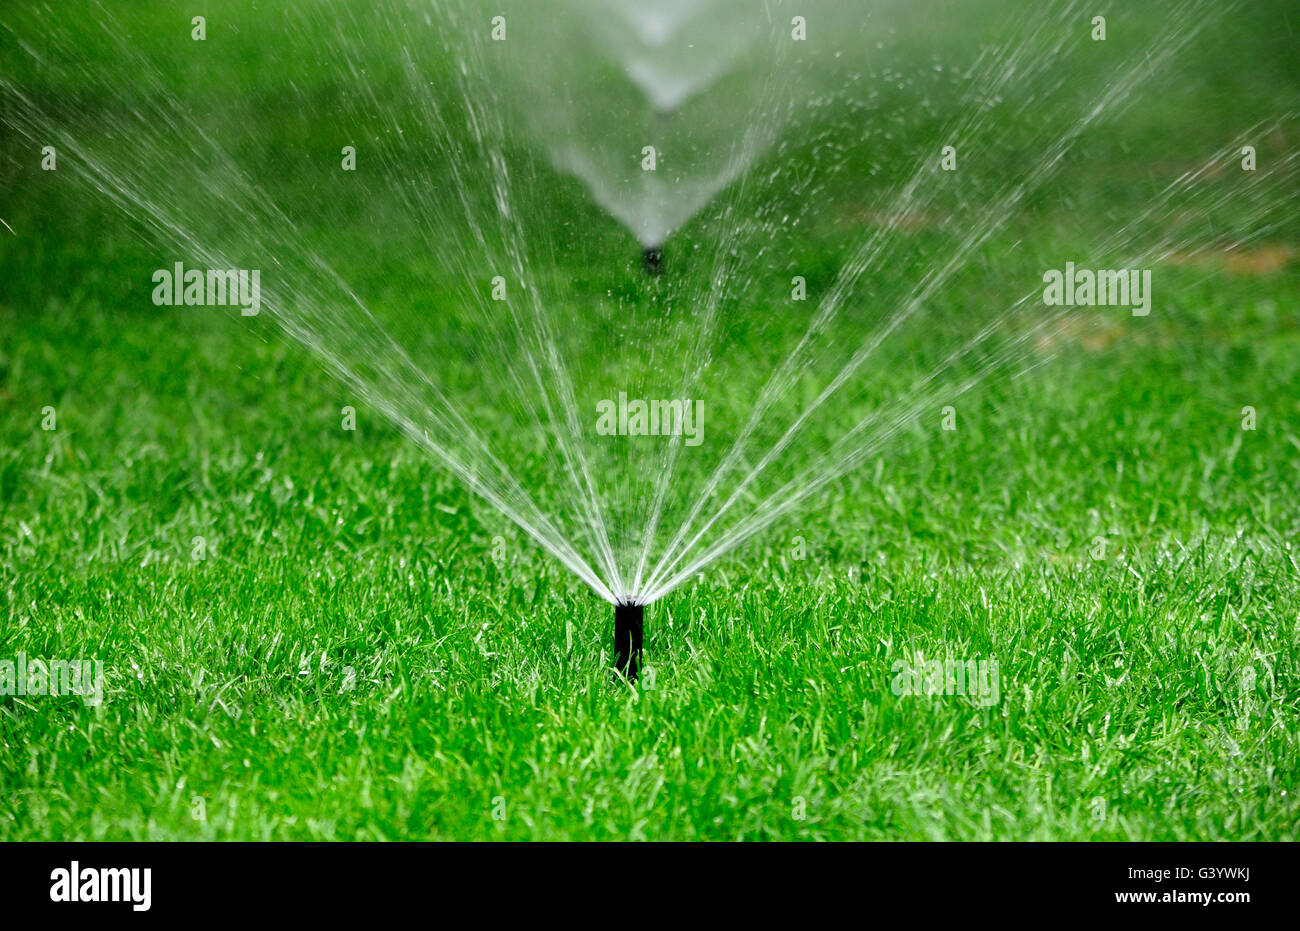 An in ground water sprinkler spraying water onto green grass within the Temple of Heaven scenic area in Beijing - Stock Image